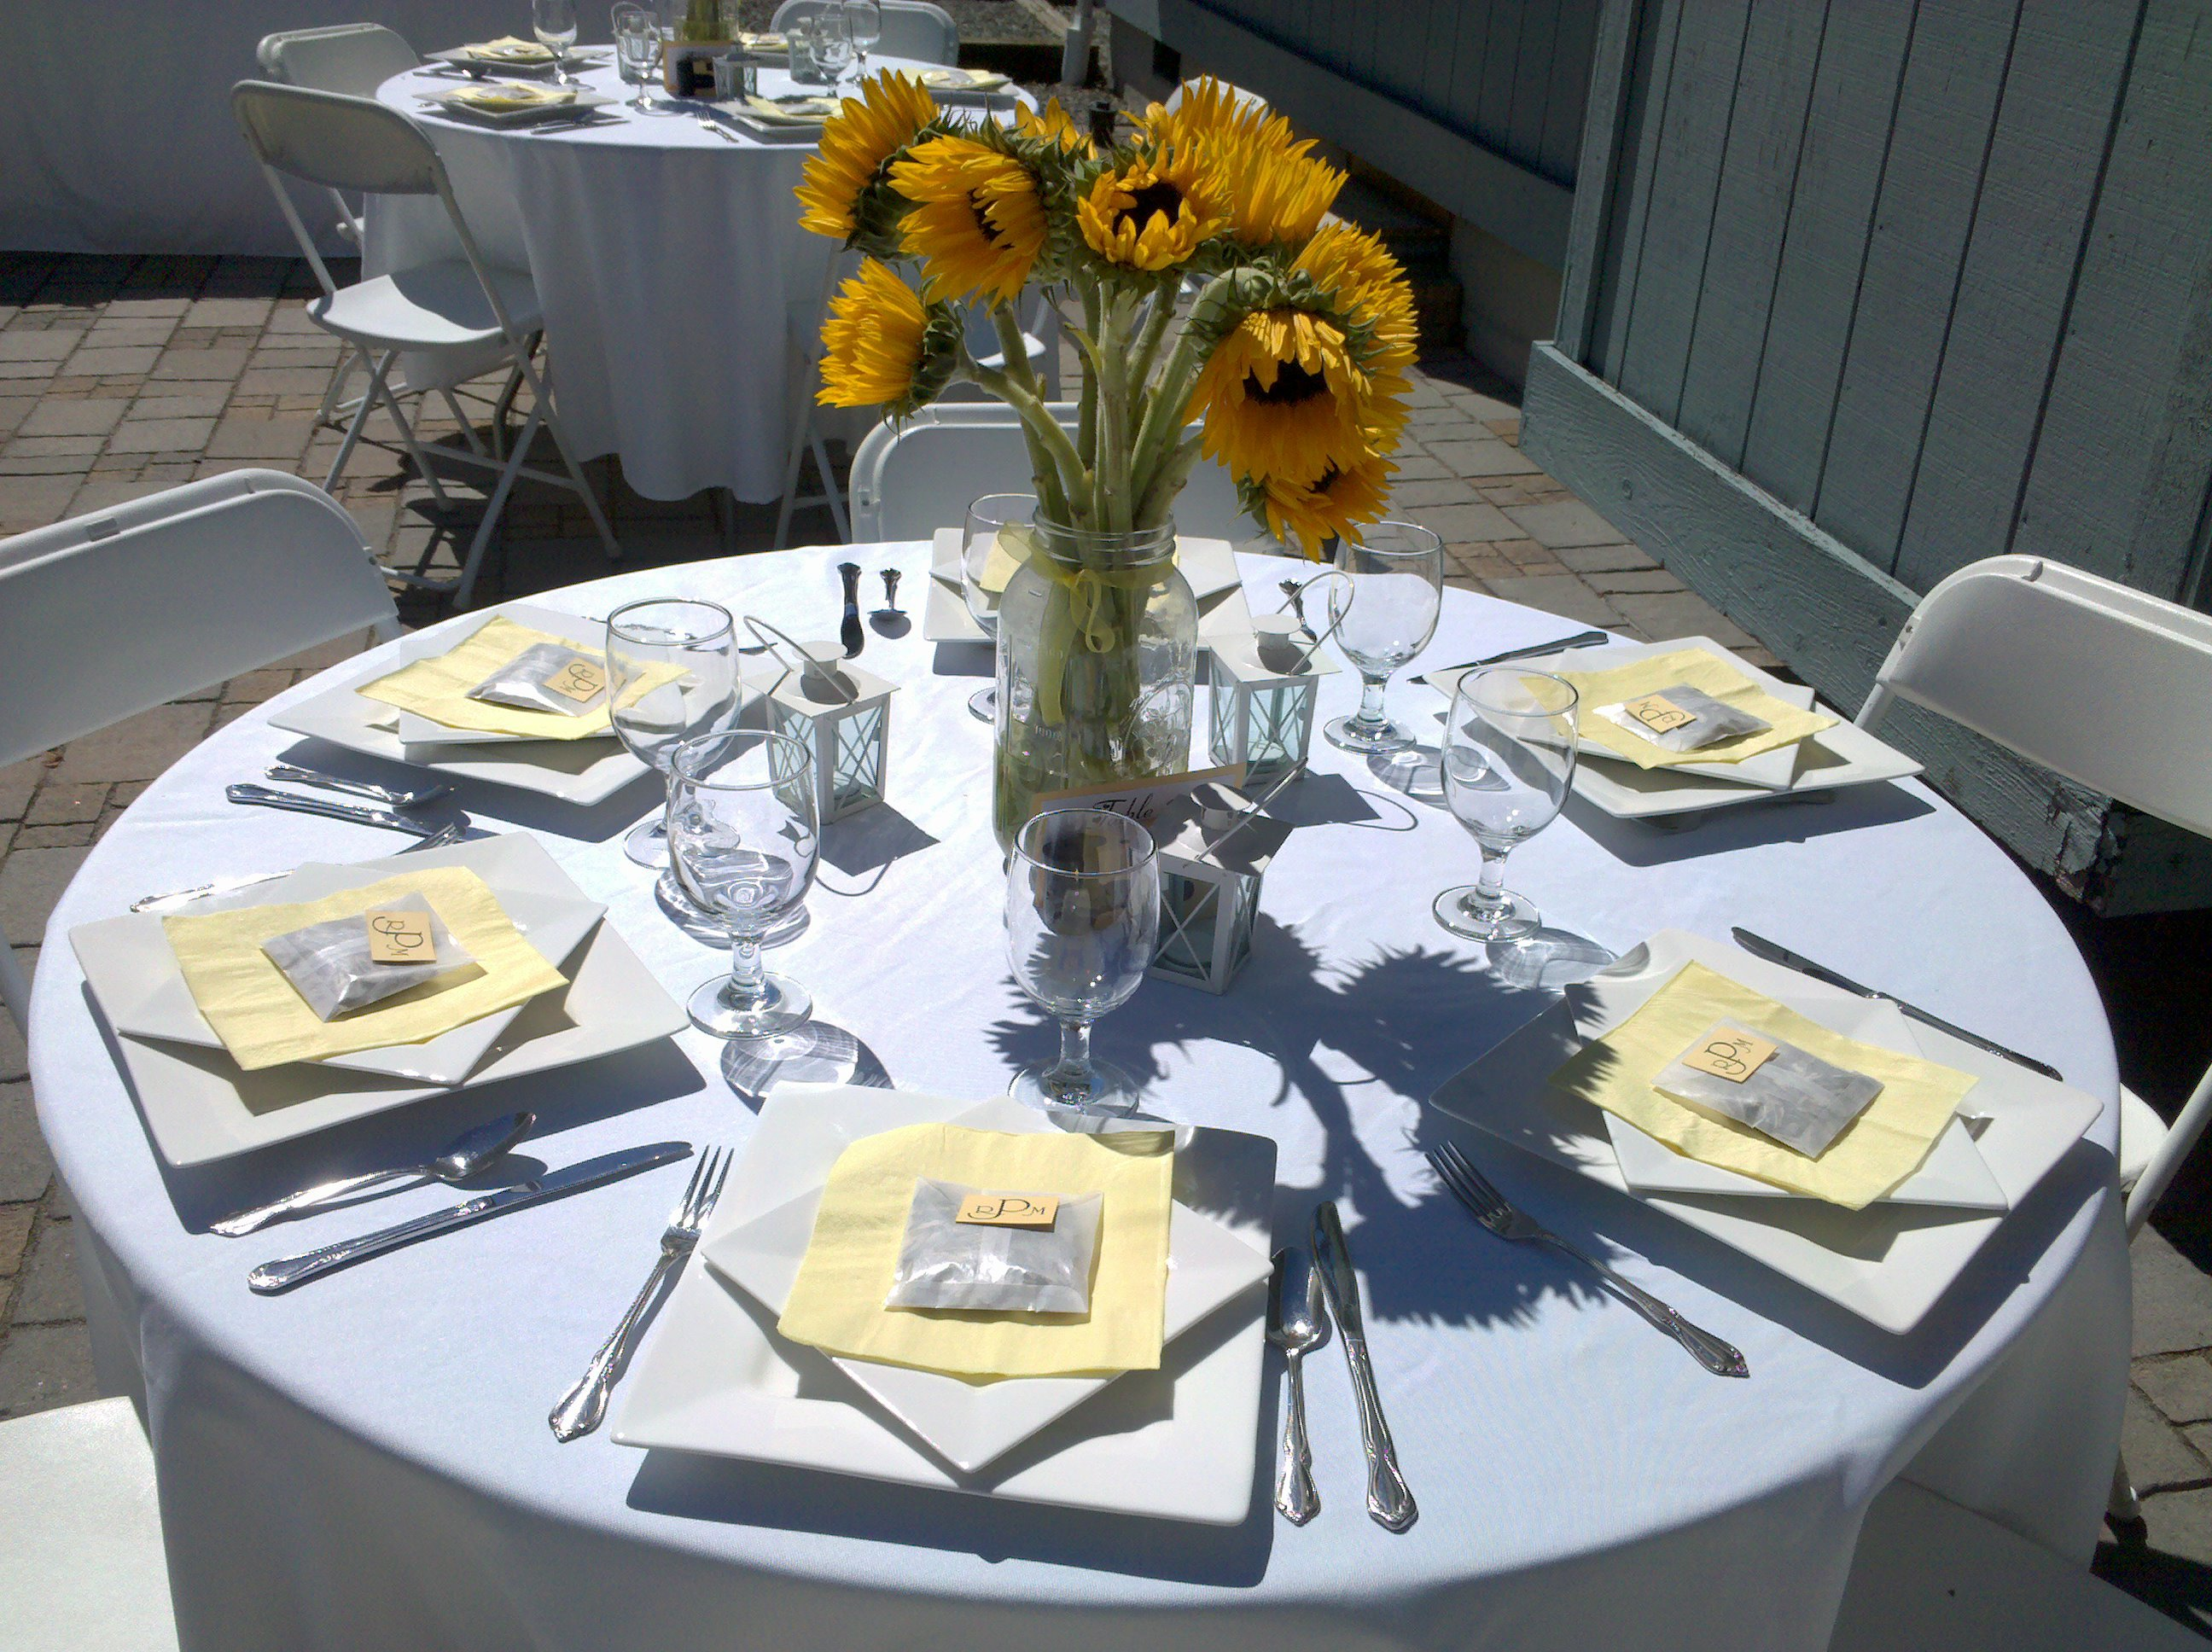 Reception, Flowers & Decor, Favors & Gifts, white, yellow, Favors, Centerpieces, Outdoor, Flower, Centerpiece, Sunflower, Place setting, Mason jar, Square plates